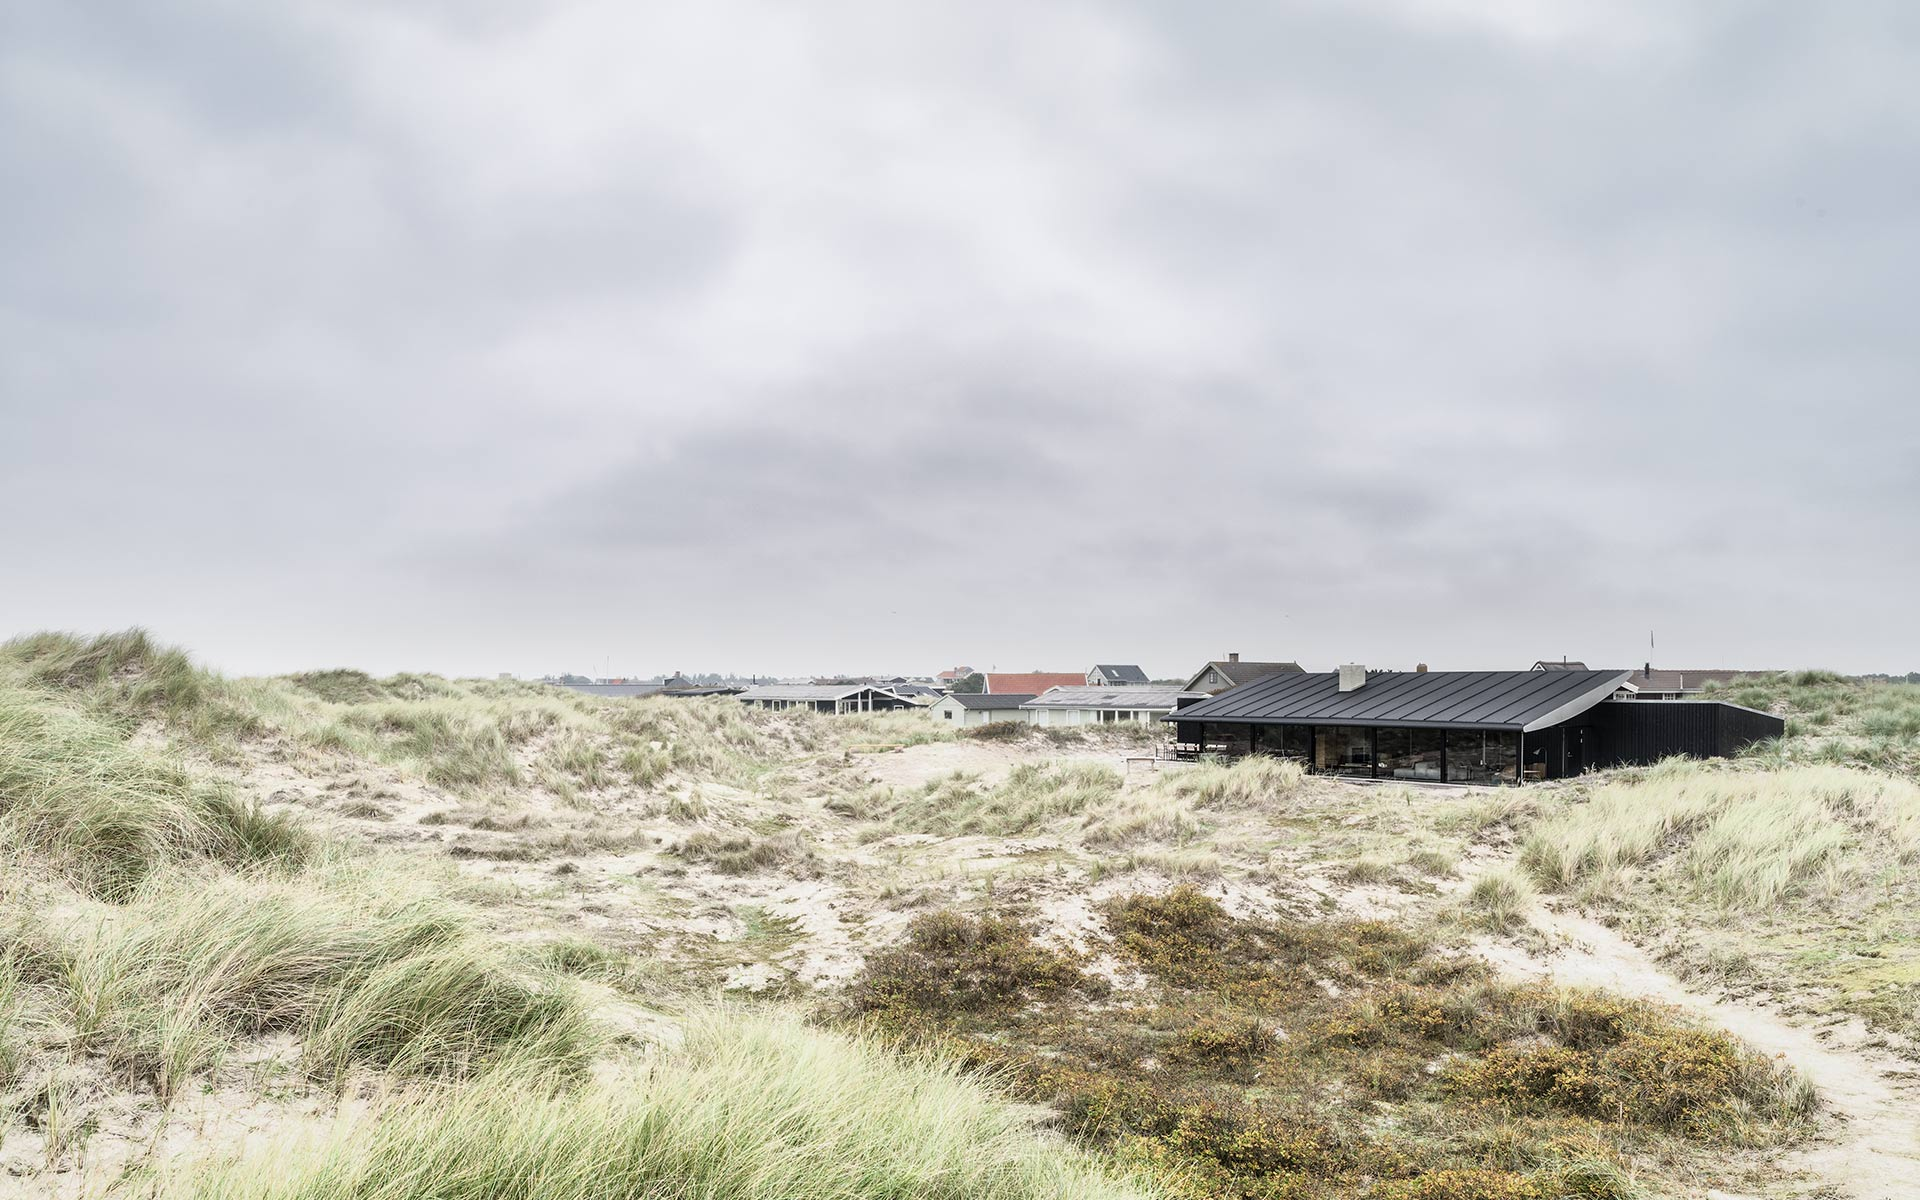 Holiday house set in the dunes on the Danish Island of Fano